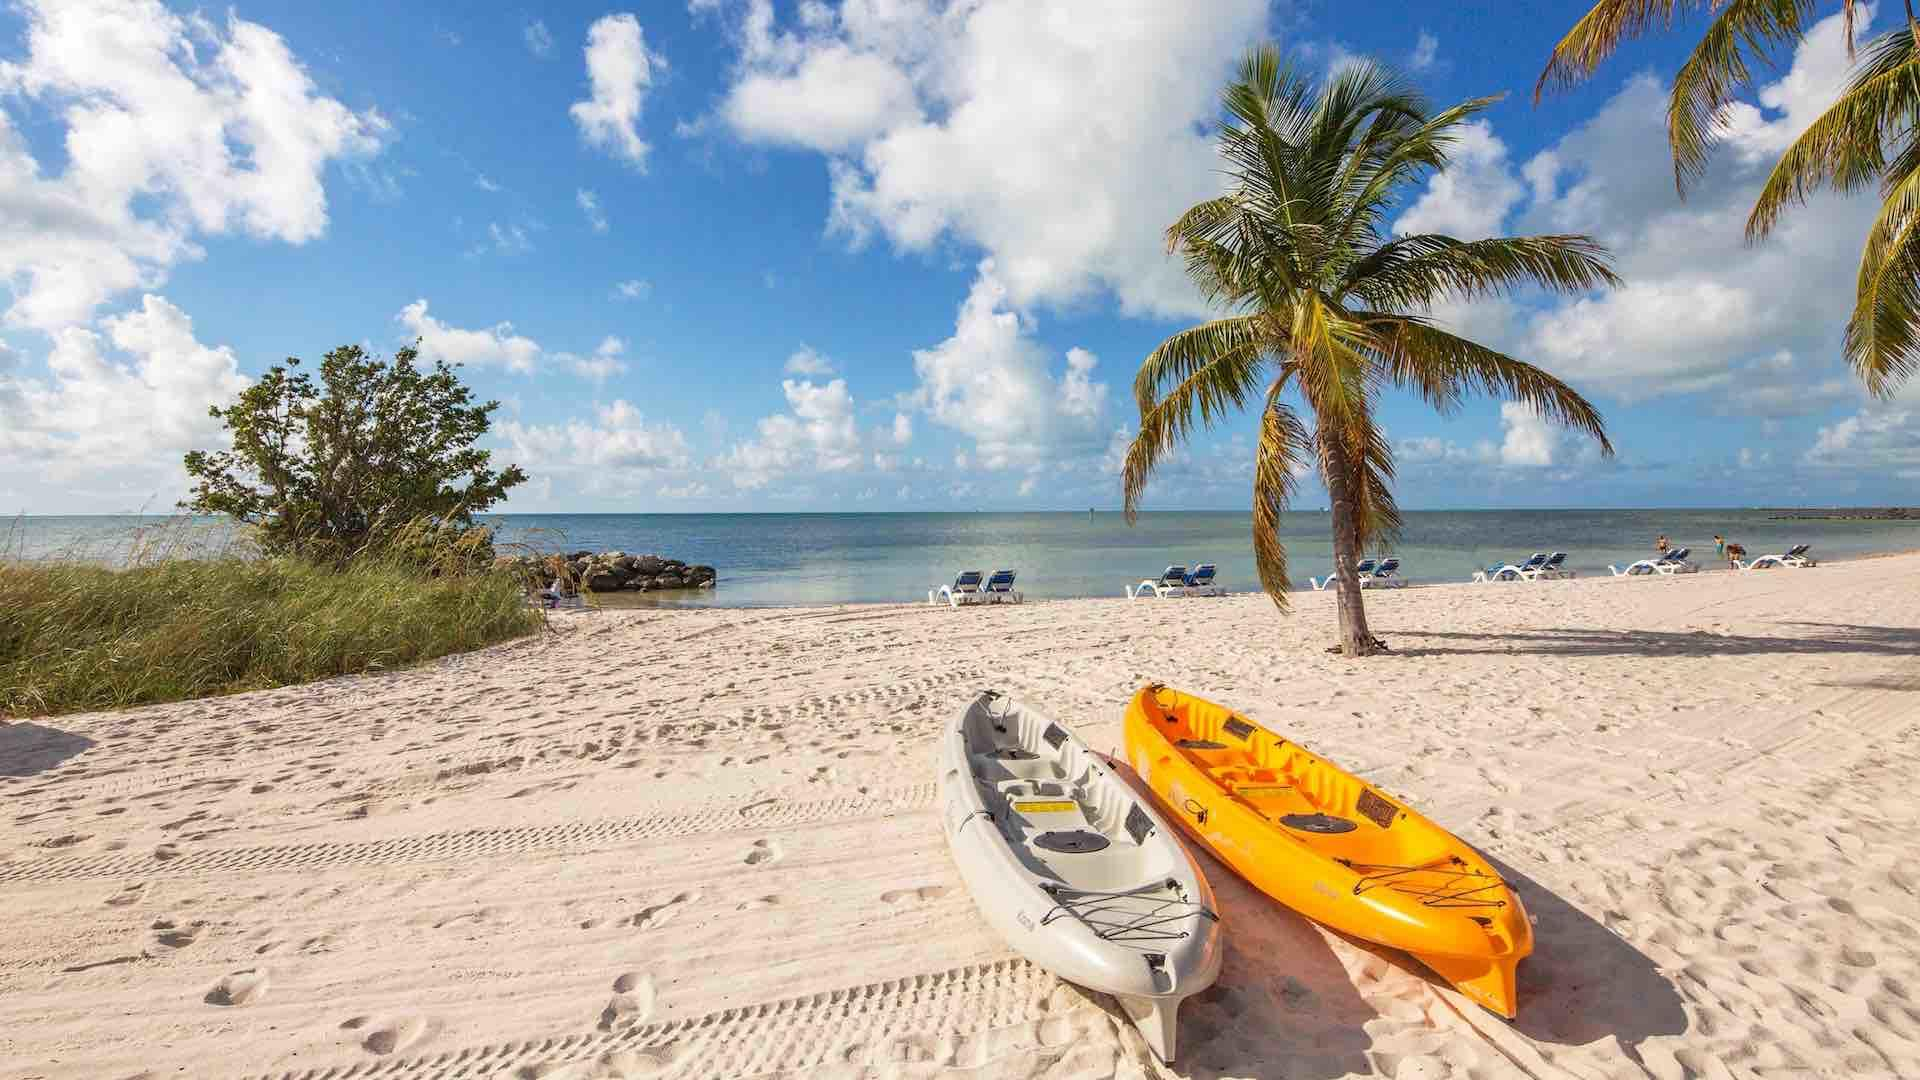 Get out on the water and enjoy the beautiful Key West waters...